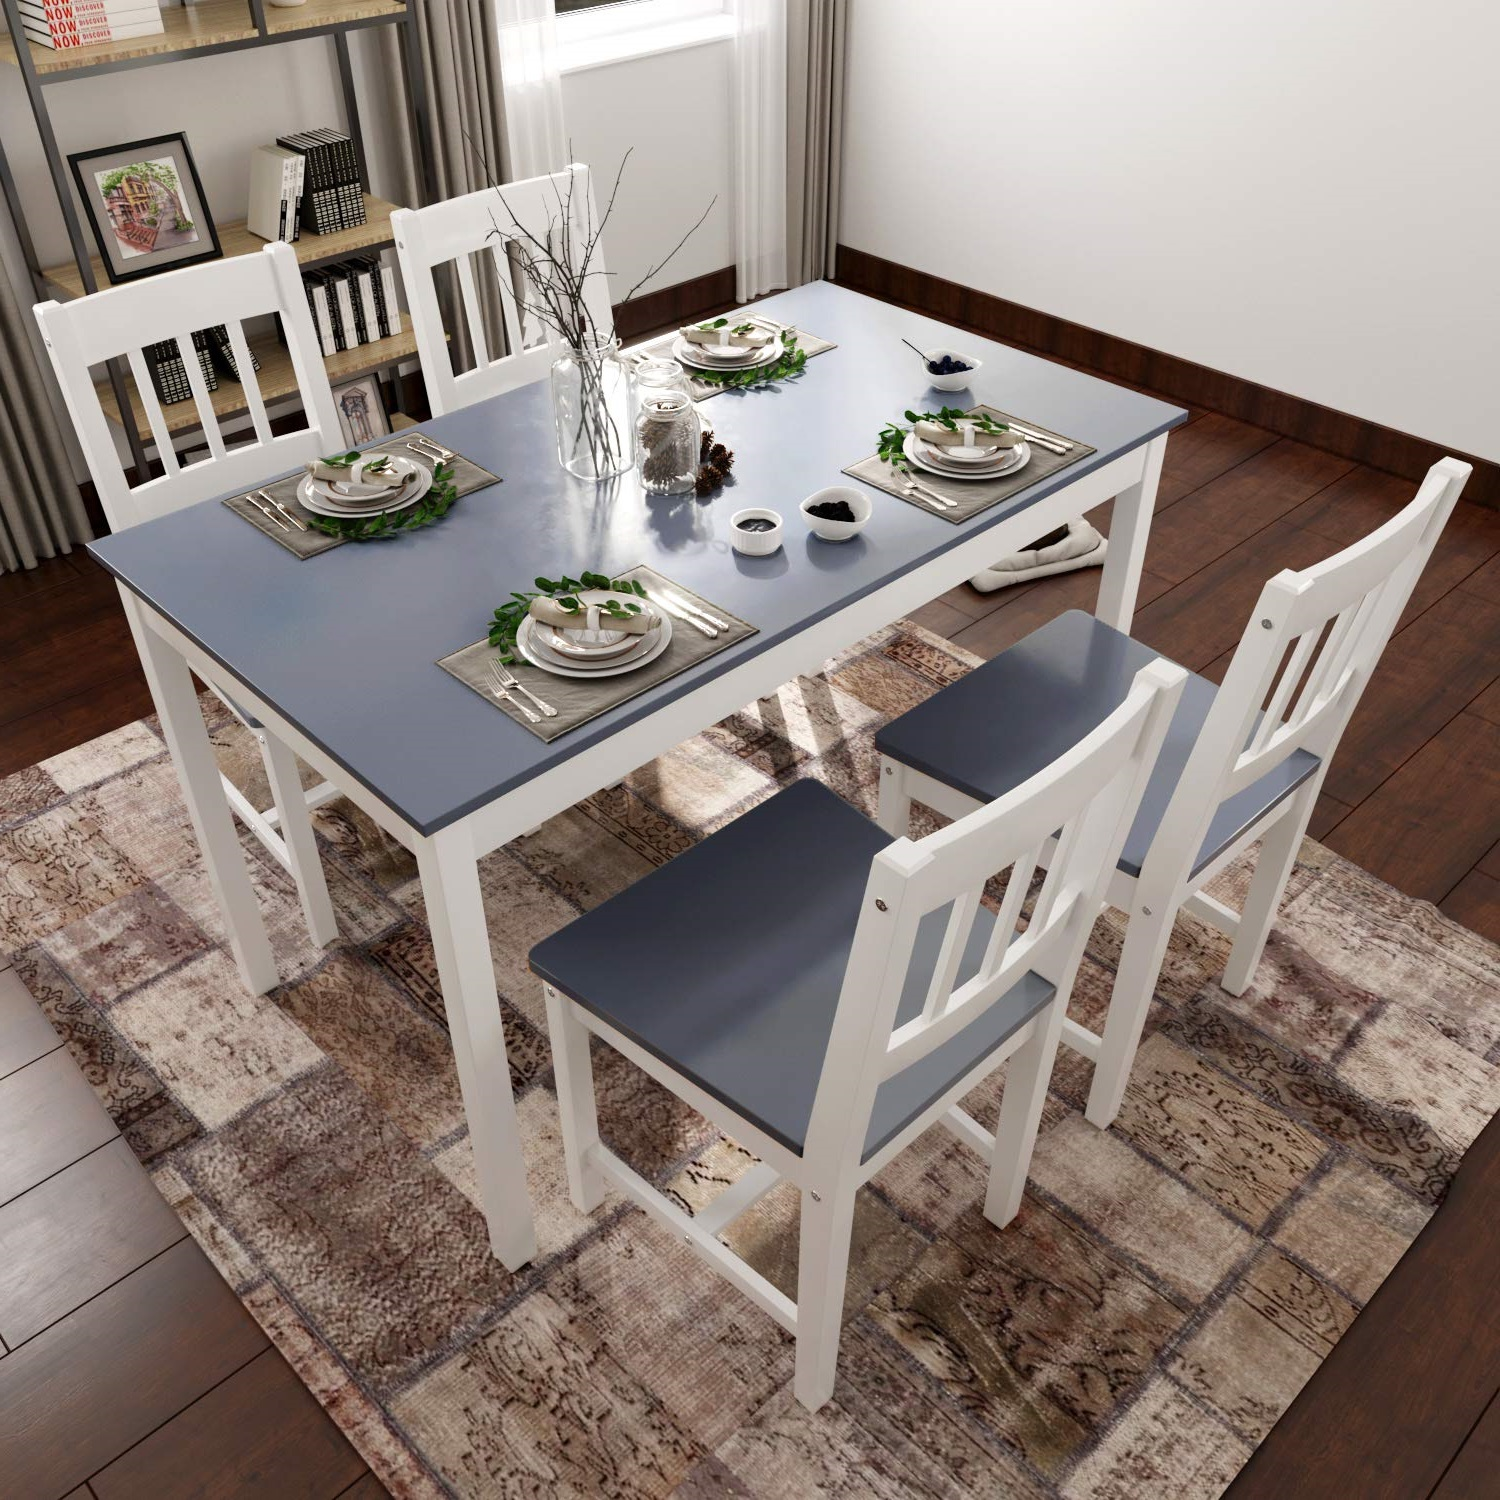 Details About Solid Pine Rectangular Design Grey Dining Table Chairs Retro Lounge Kitchen